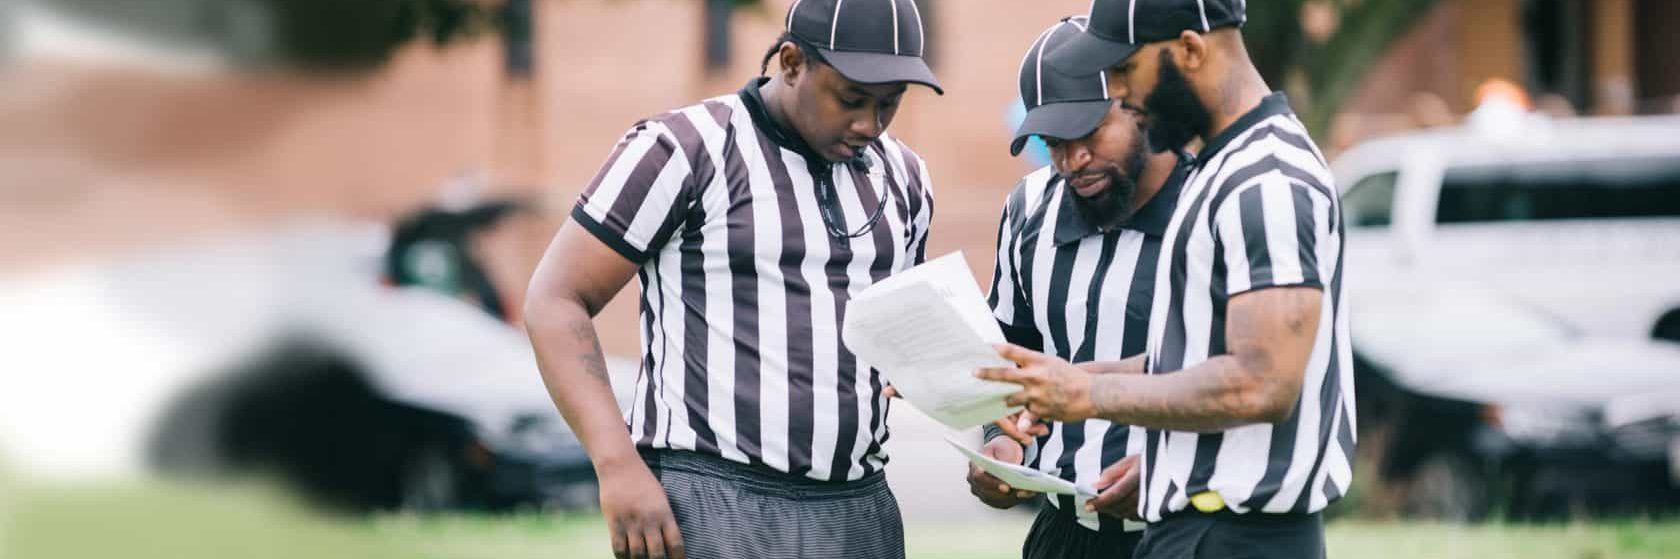 Three flag football referees reviewing game rules